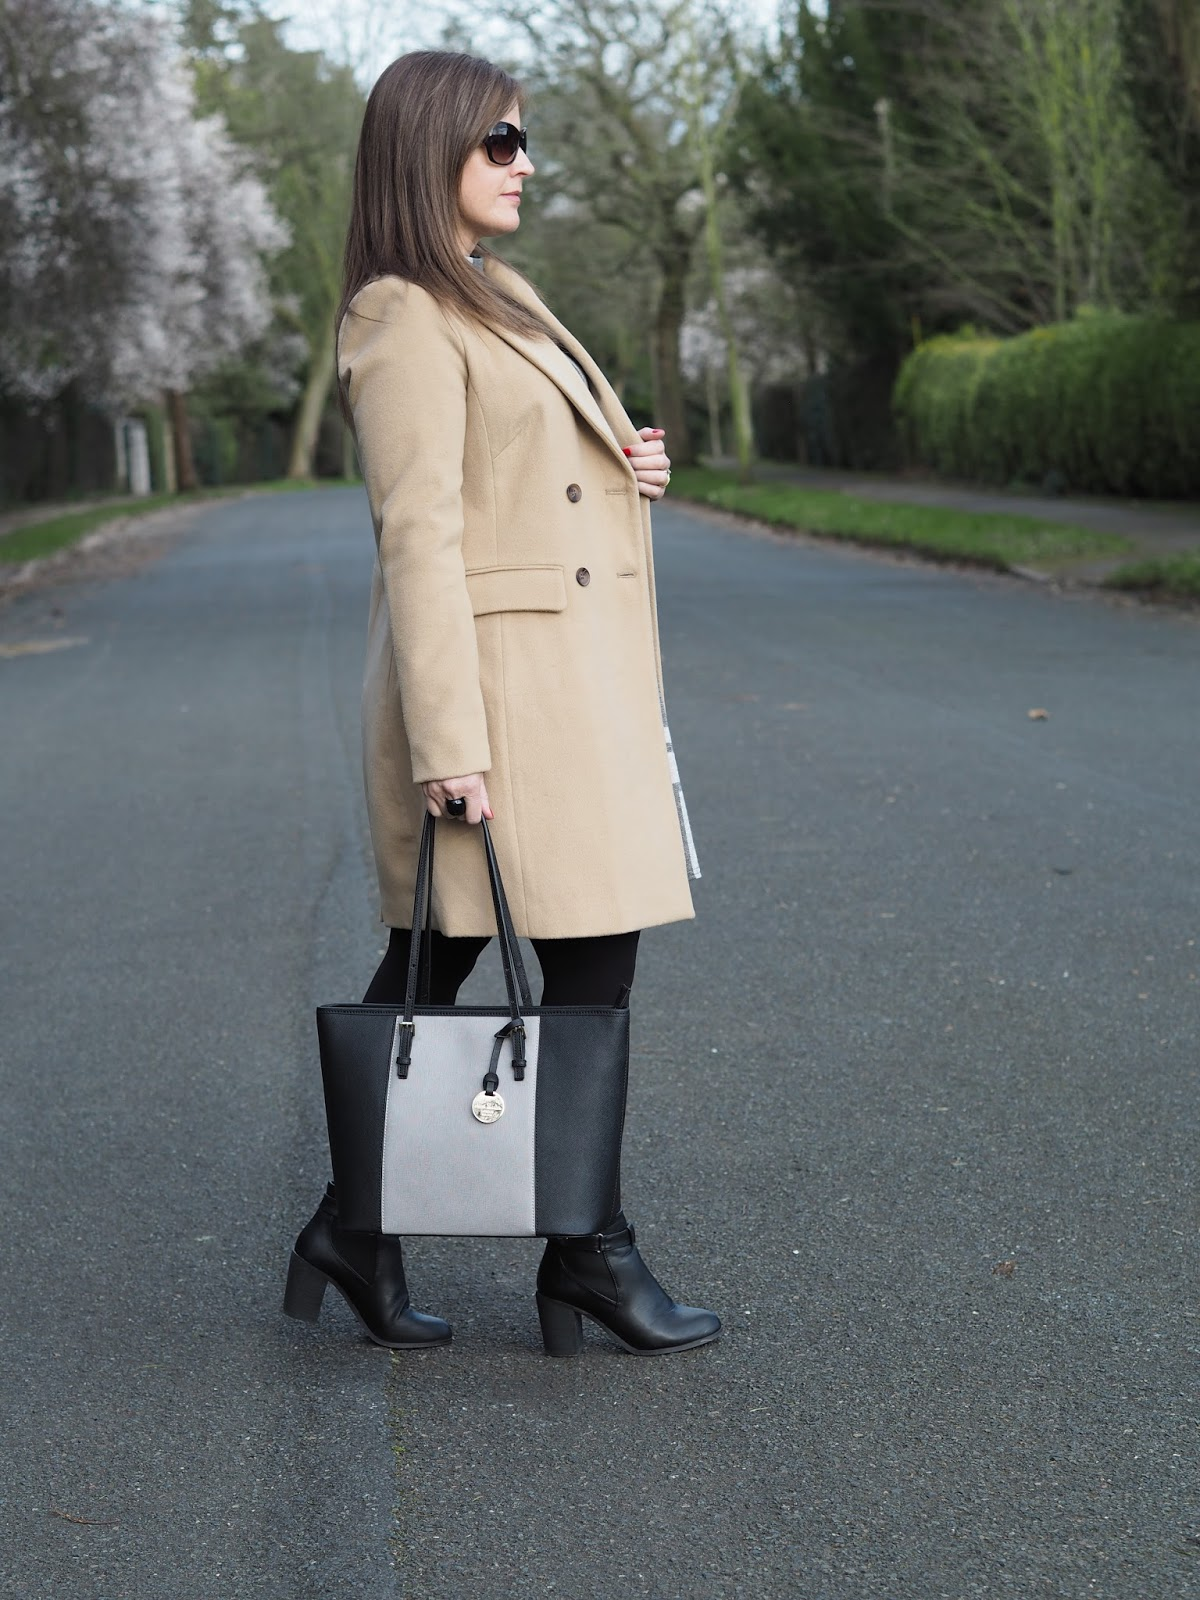 Jane Shilton Carolina colour block tote Cellini New Look camel coat